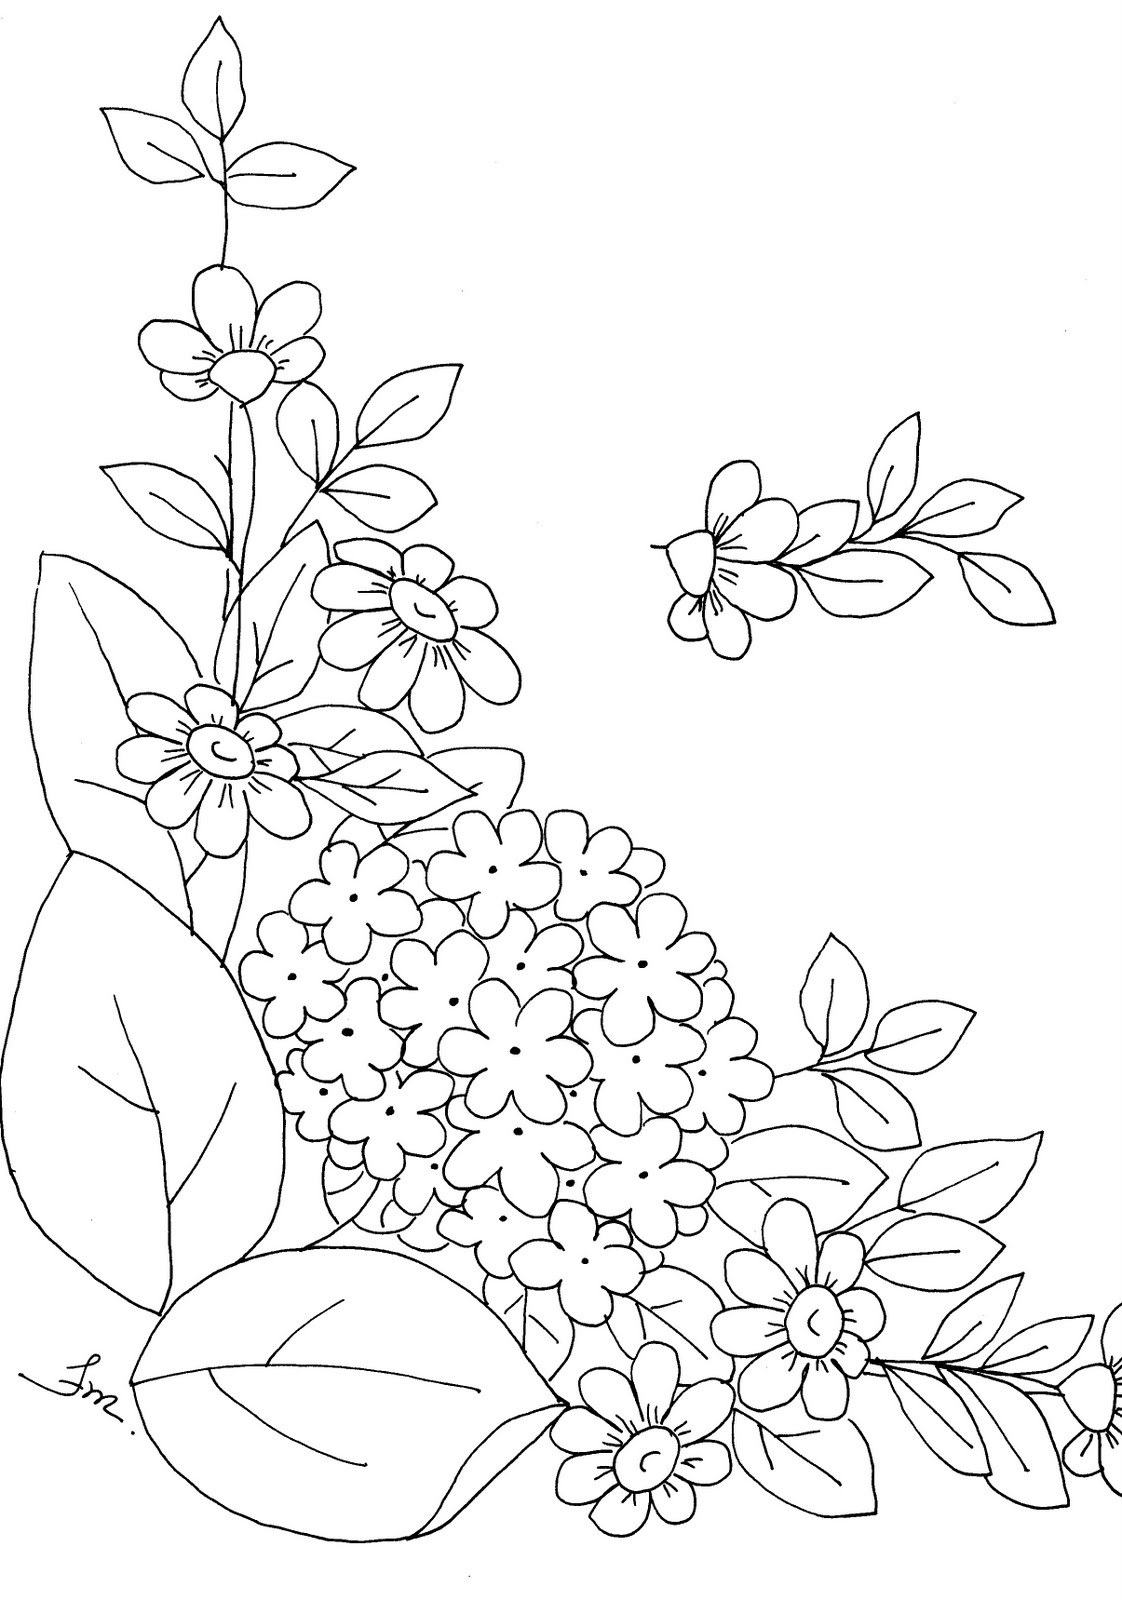 2011 04 01 archive likewise 2015 04 01 archive in addition 2011 04 01 archive in addition 2011 04 01 archive as well Spongebob Coloring Pages. on 2011 04 01 archive